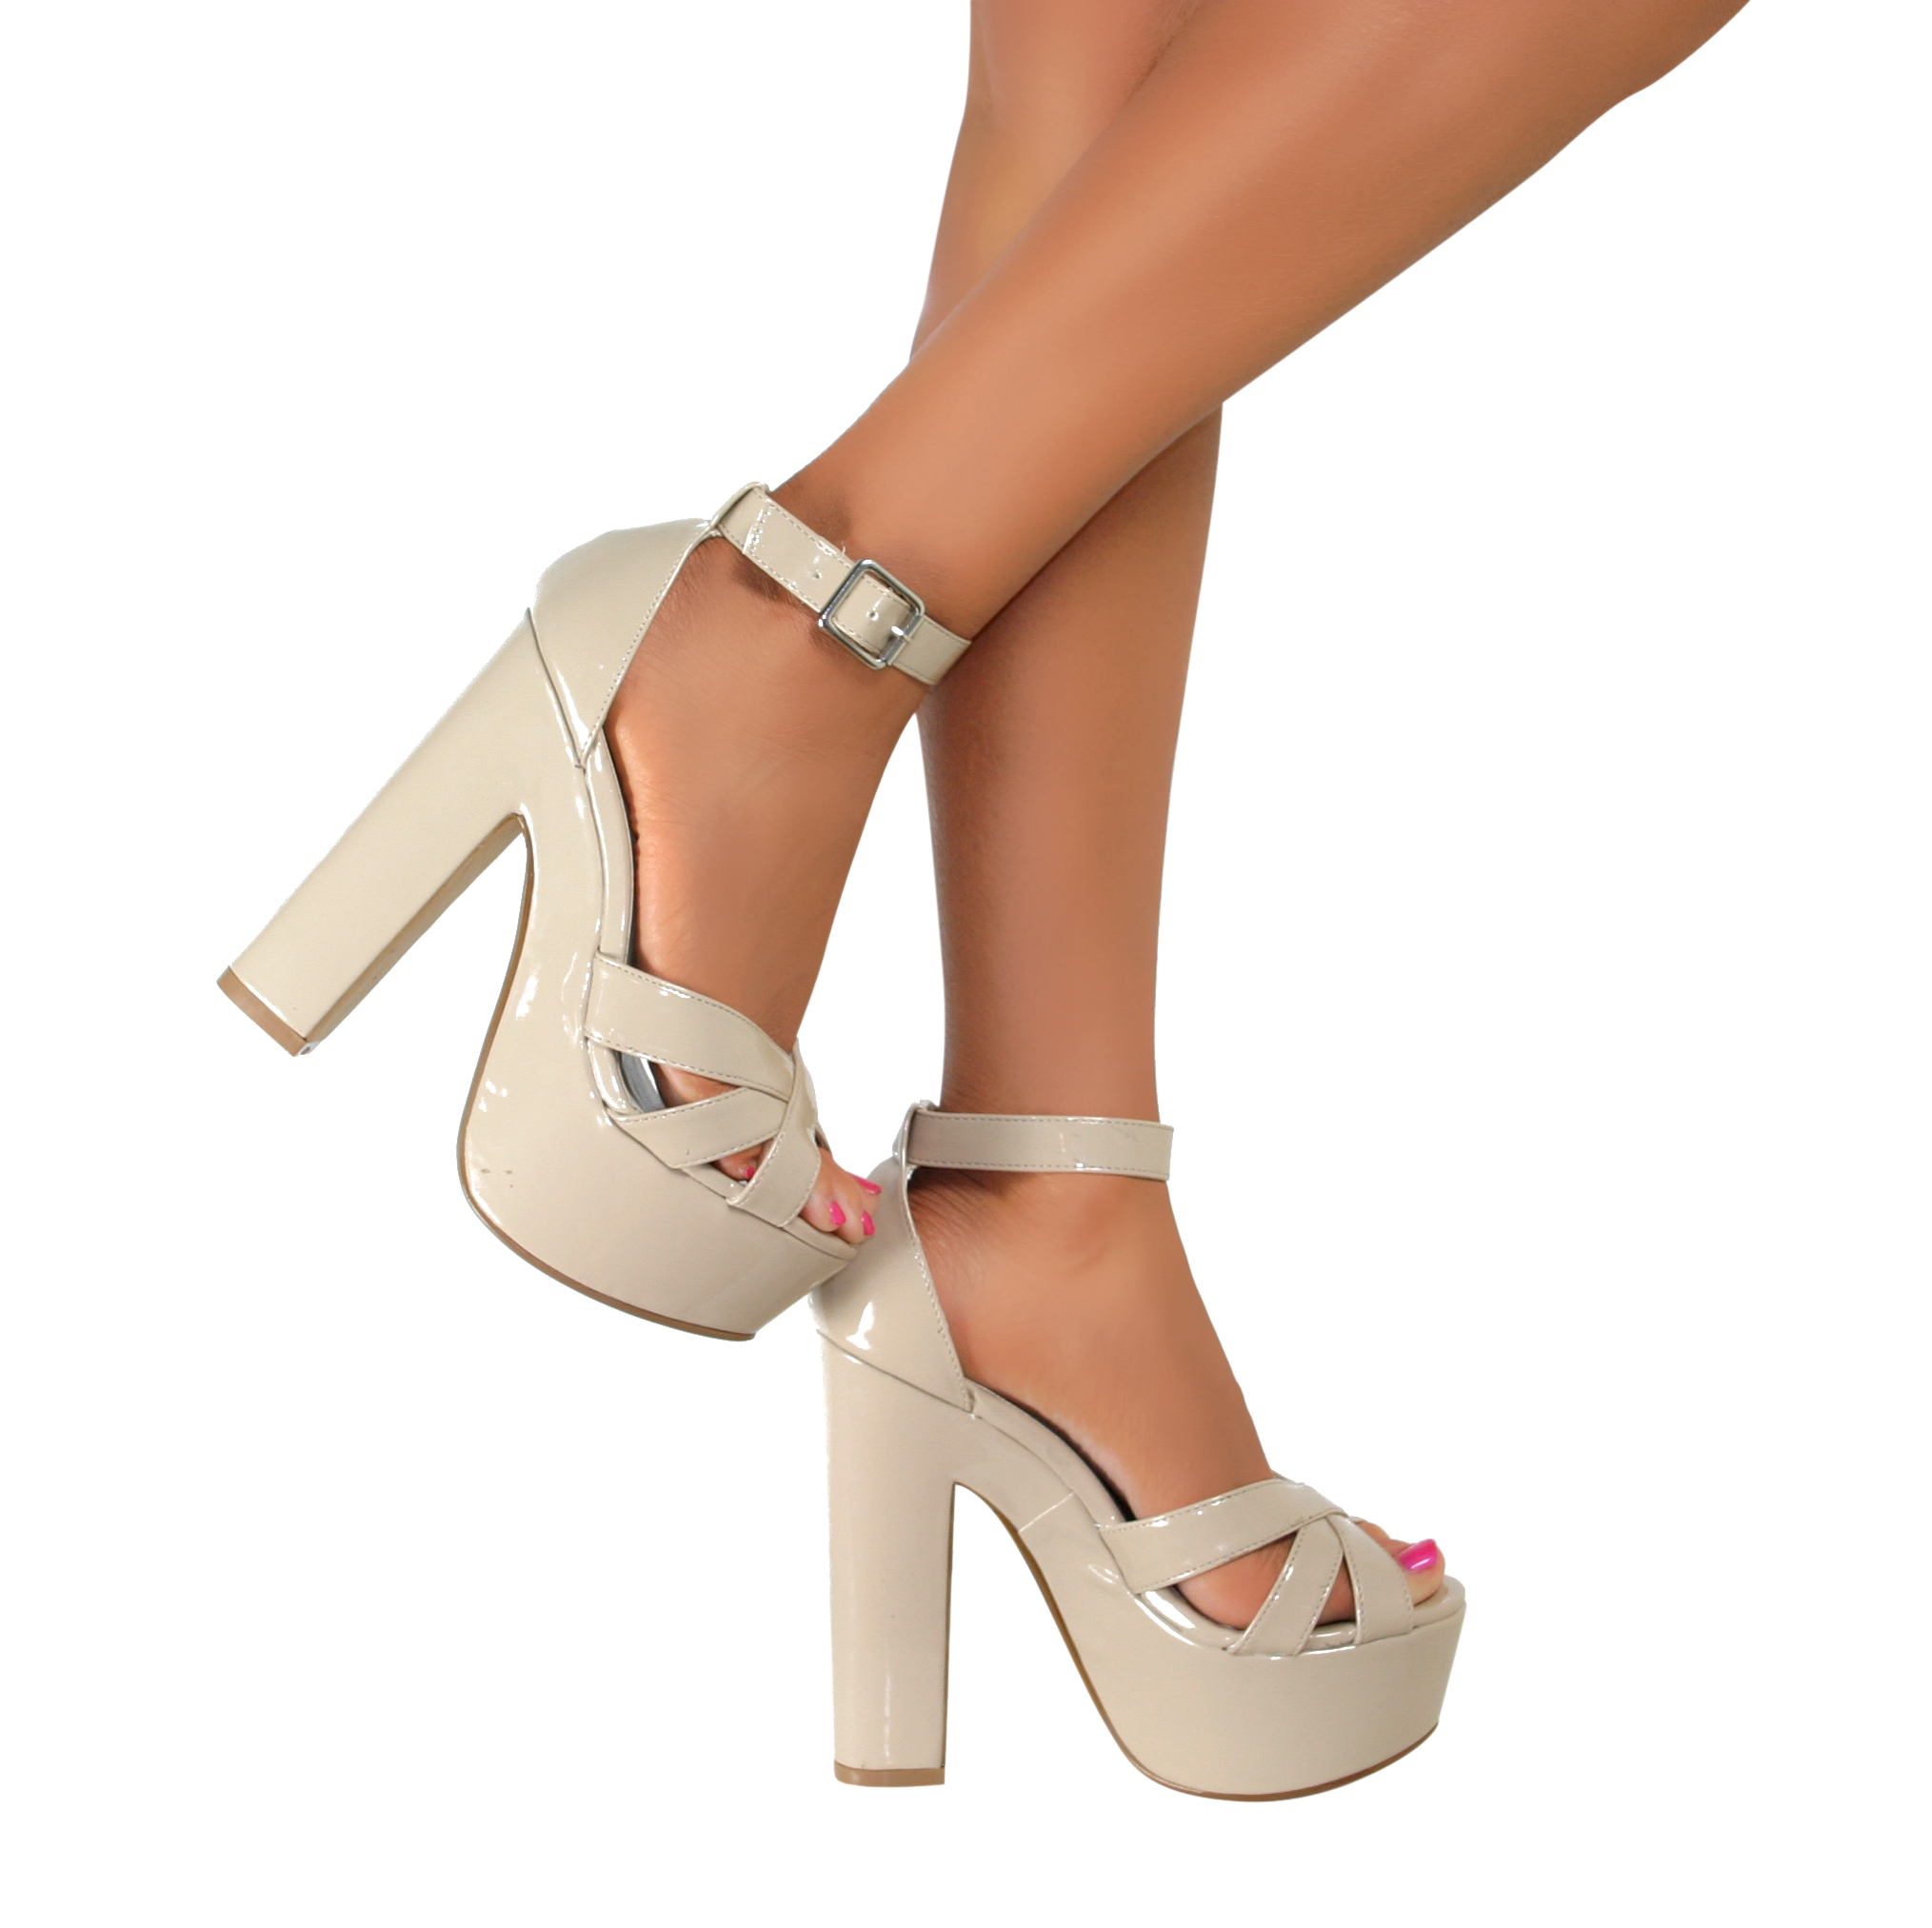 ZriEy Women's Chunky Block Strappy High Heel Pump Sandals Fashion Ankle Strap Open Shop Best Sellers· Deals of the Day· Fast Shipping· Read Ratings & Reviews.